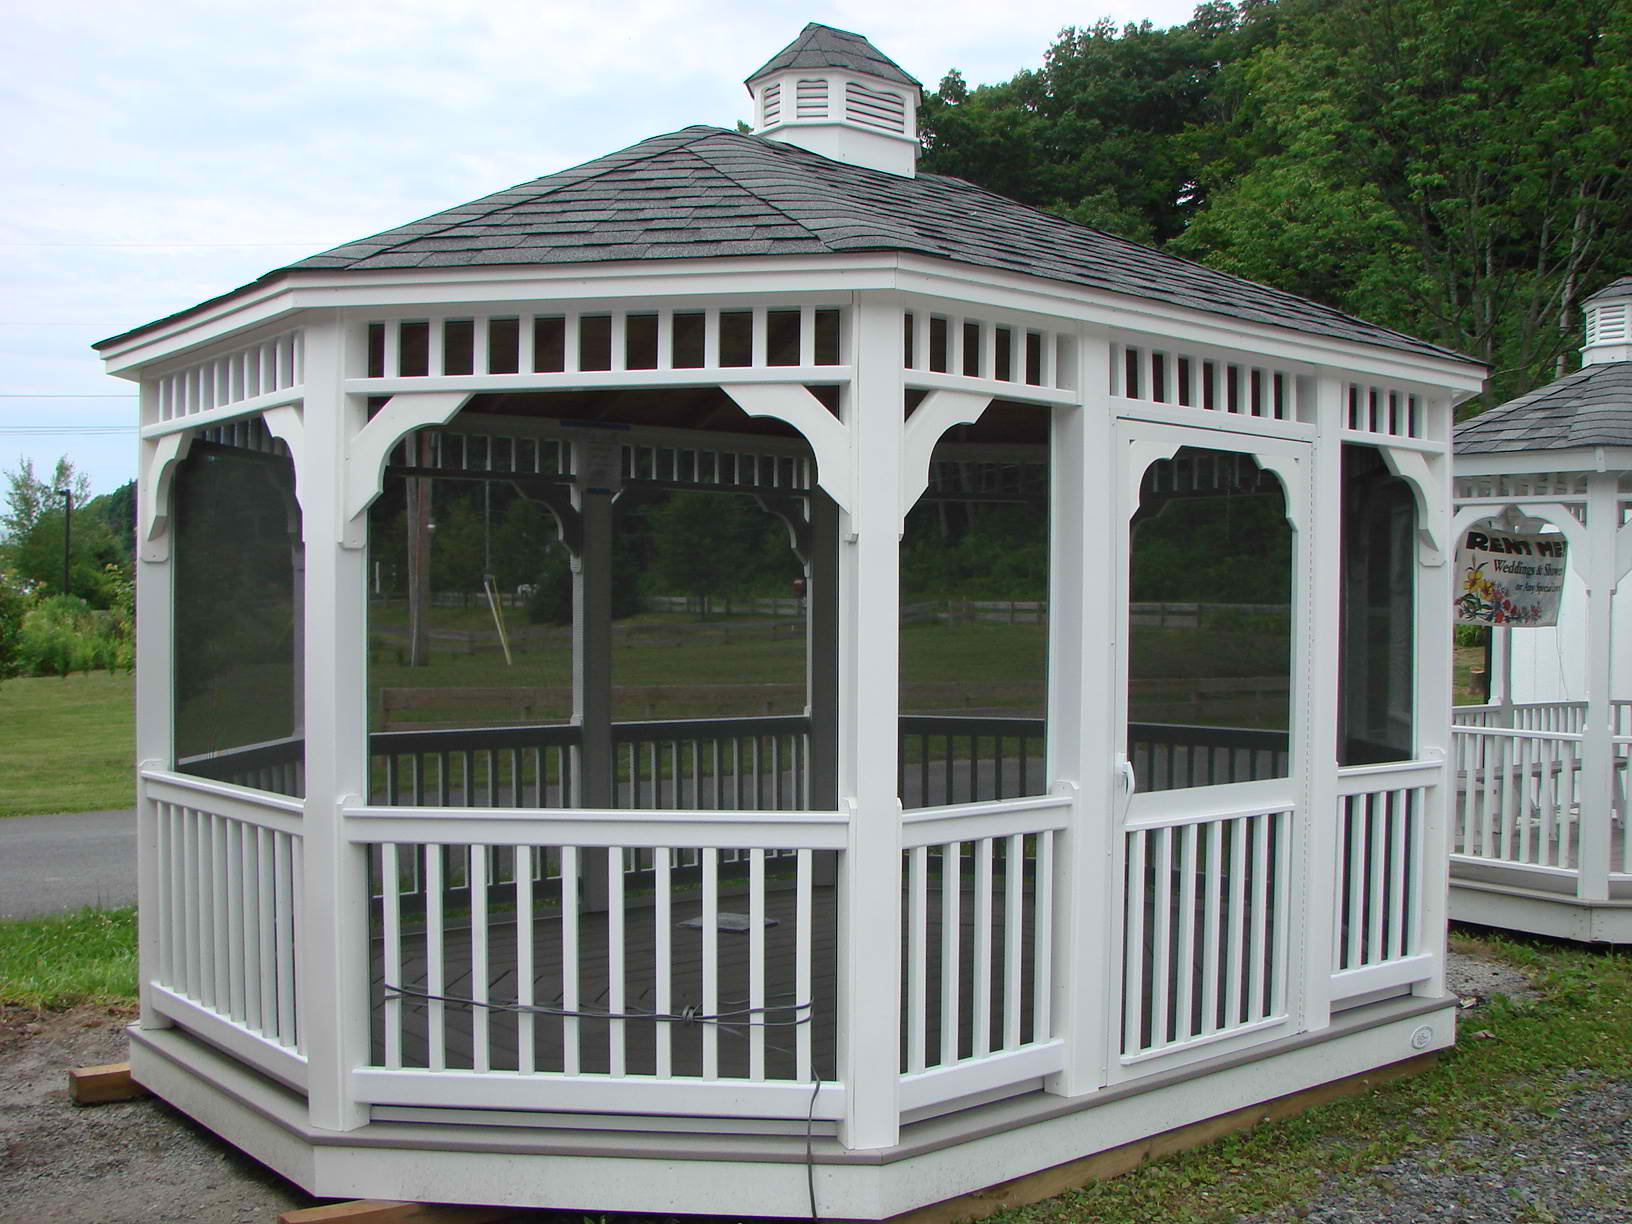 10'x16' Vinyl Oval Gazebo w/ Optional Screens